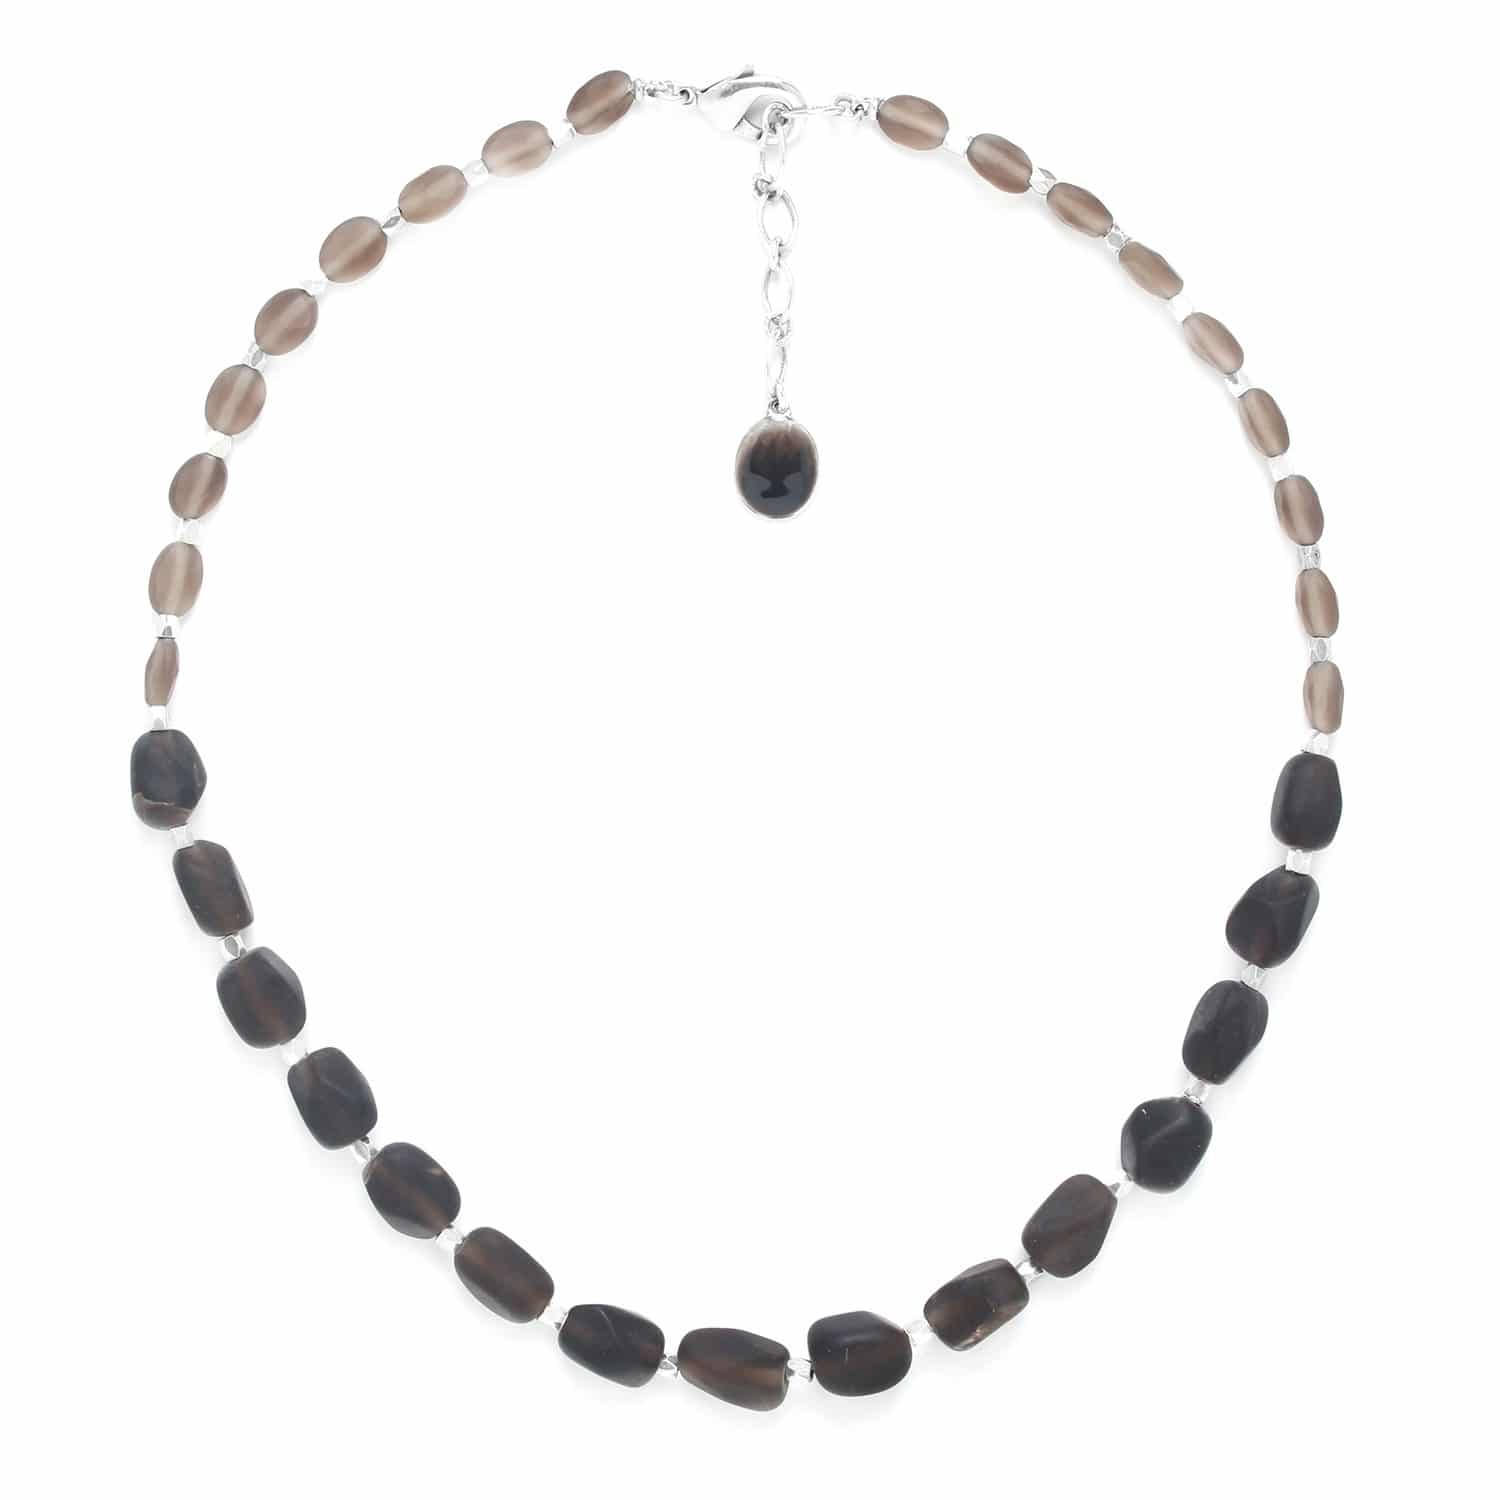 OMBRE ET LUMIERE smoky quartz necklace